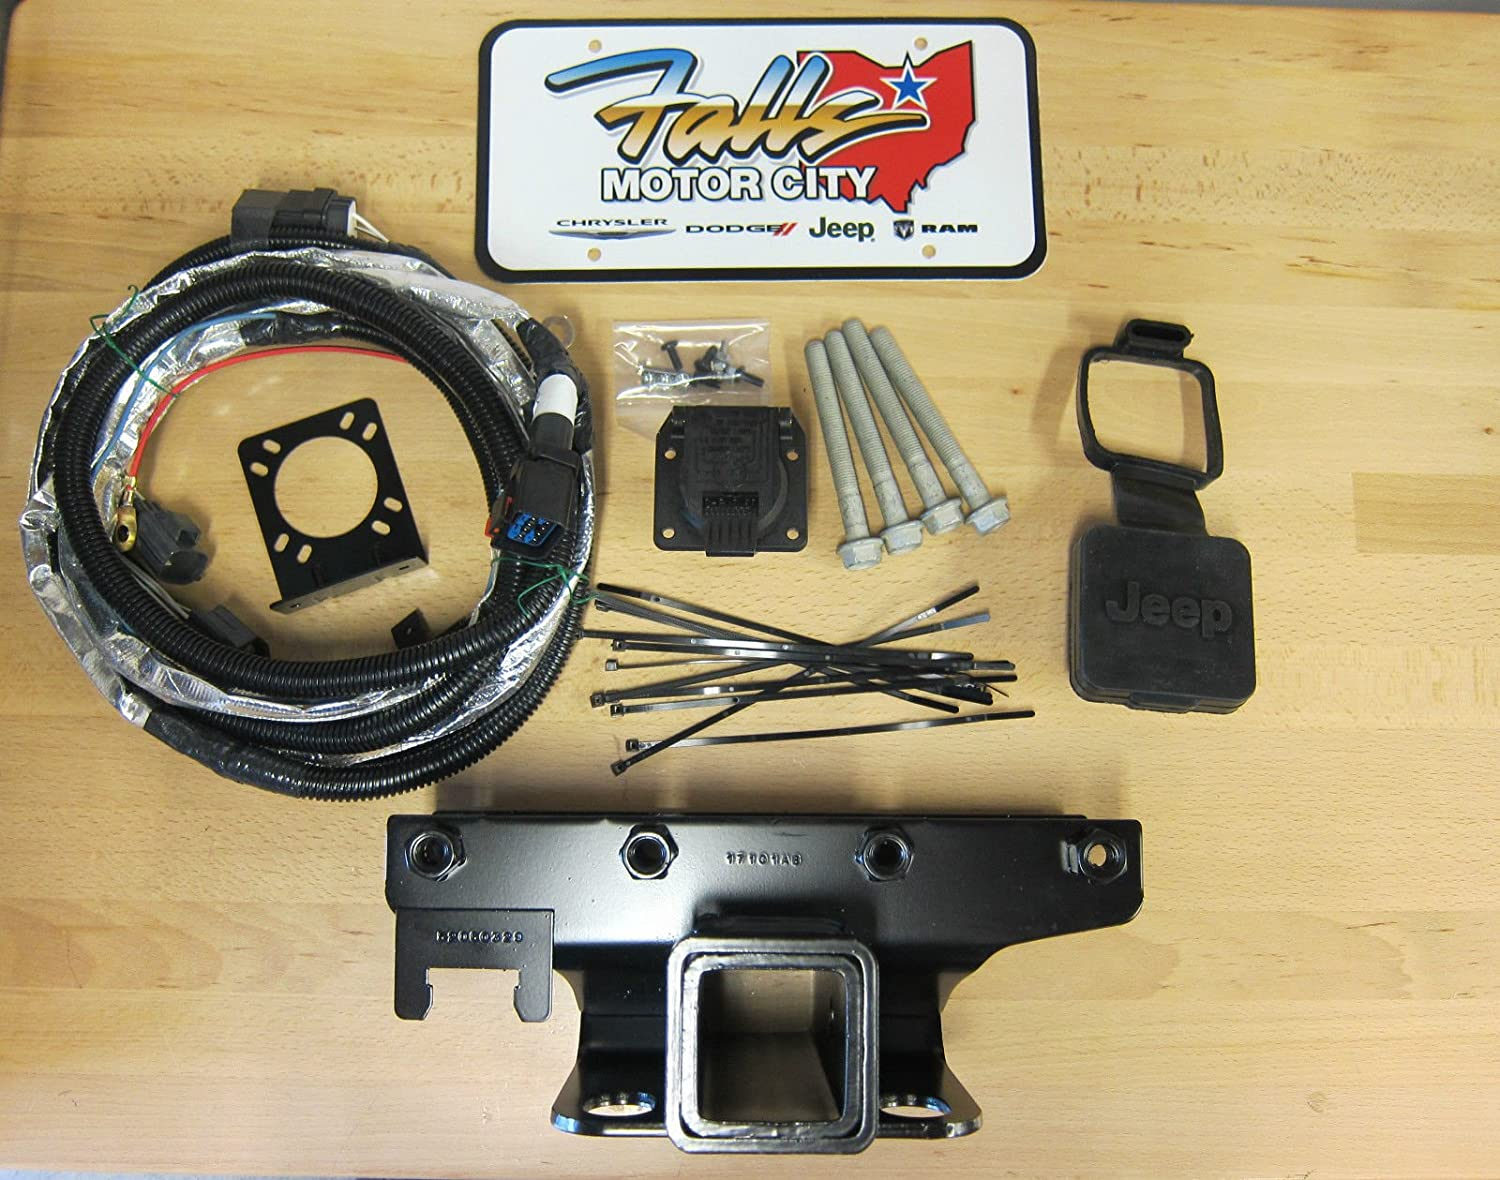 Mopar Jeep Wrangler Jk Trailer Tow Hitch Receiver 7 Way Oem Dodge Ram Wiring Harness Kit Cover Automotive